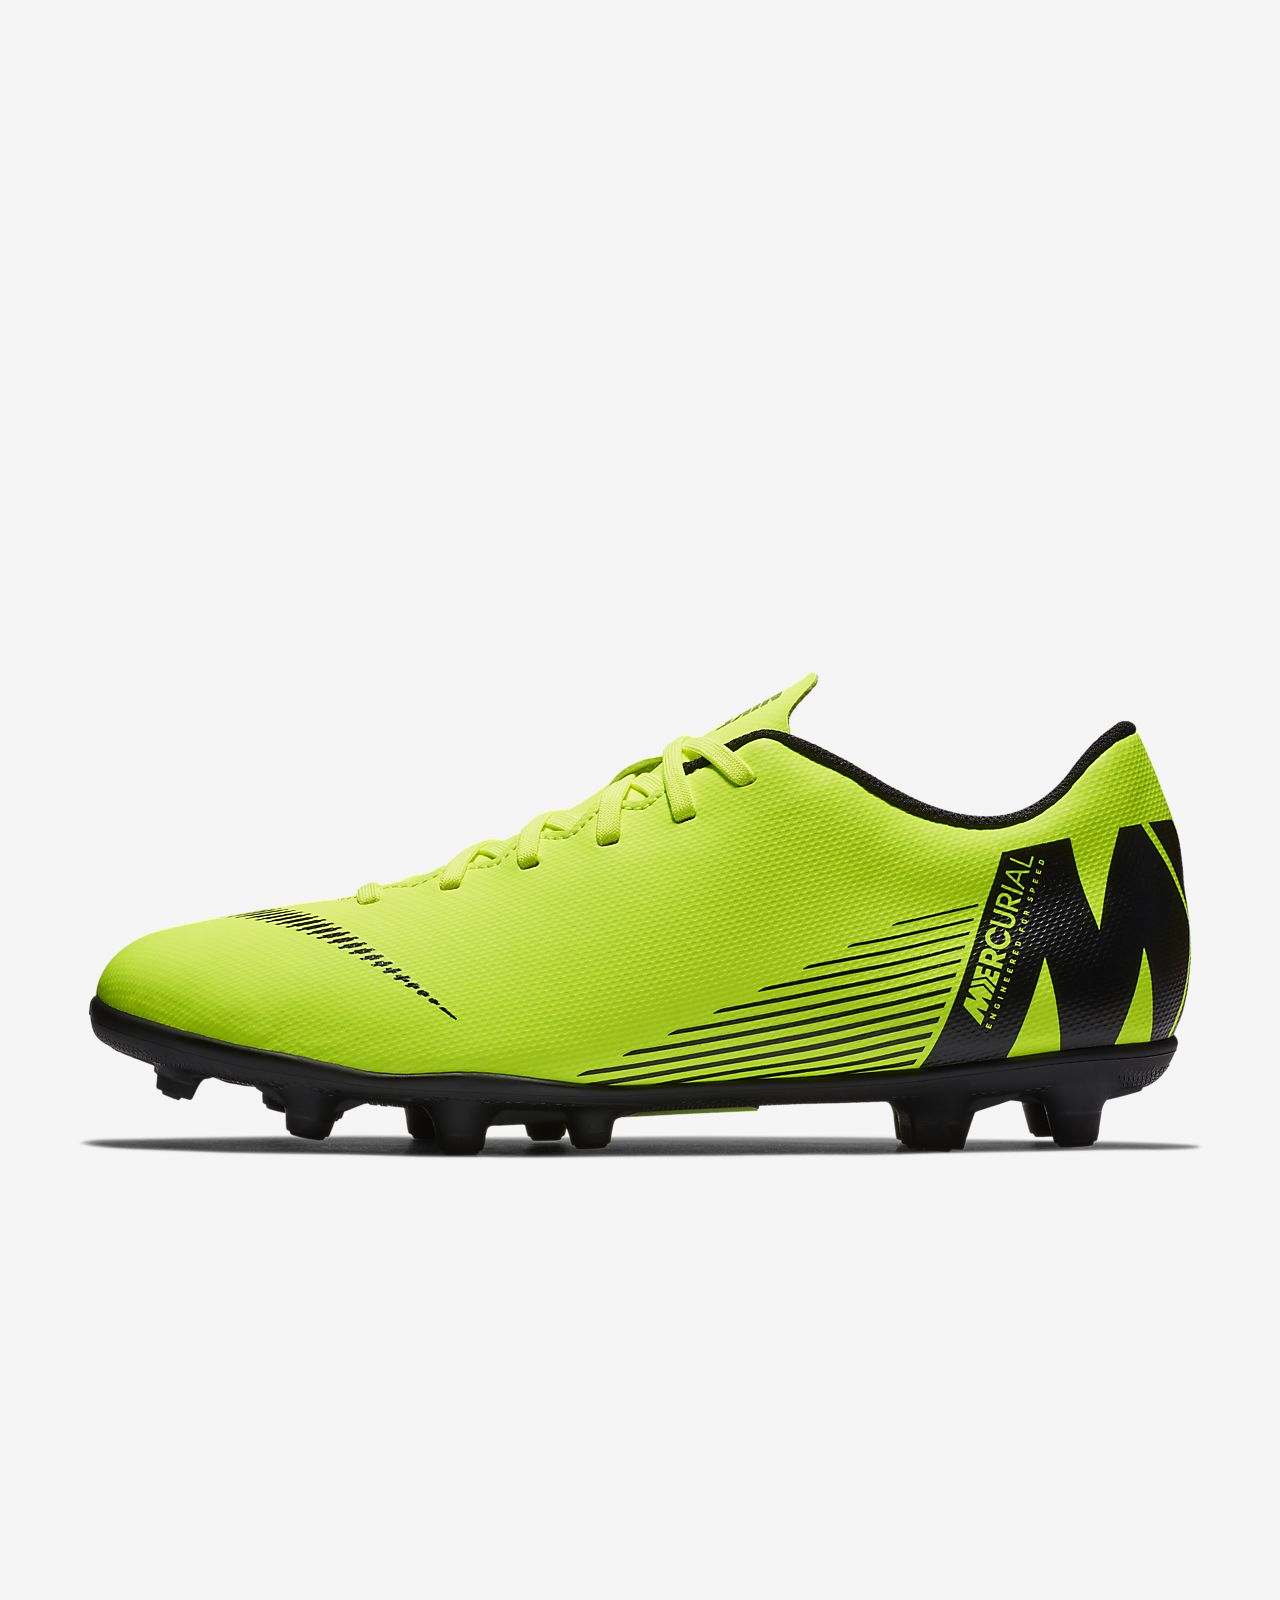 6e3c55c0559 Nike Mercurial Vapor XII Club Multi-Ground Football Boot. Nike.com AU